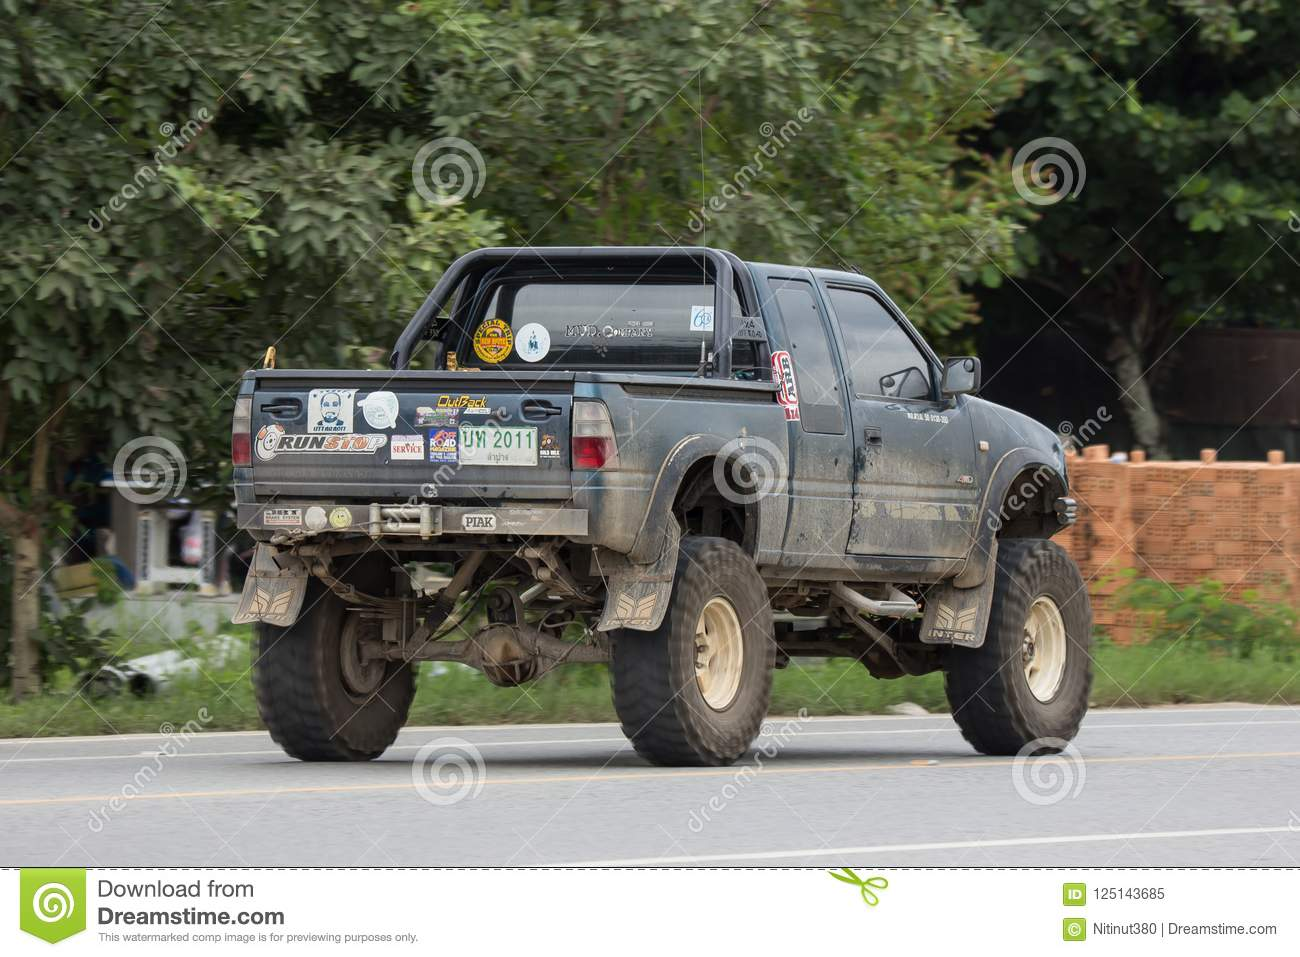 Private Isuzu TFR Pickup Truck  Editorial Image - Image of